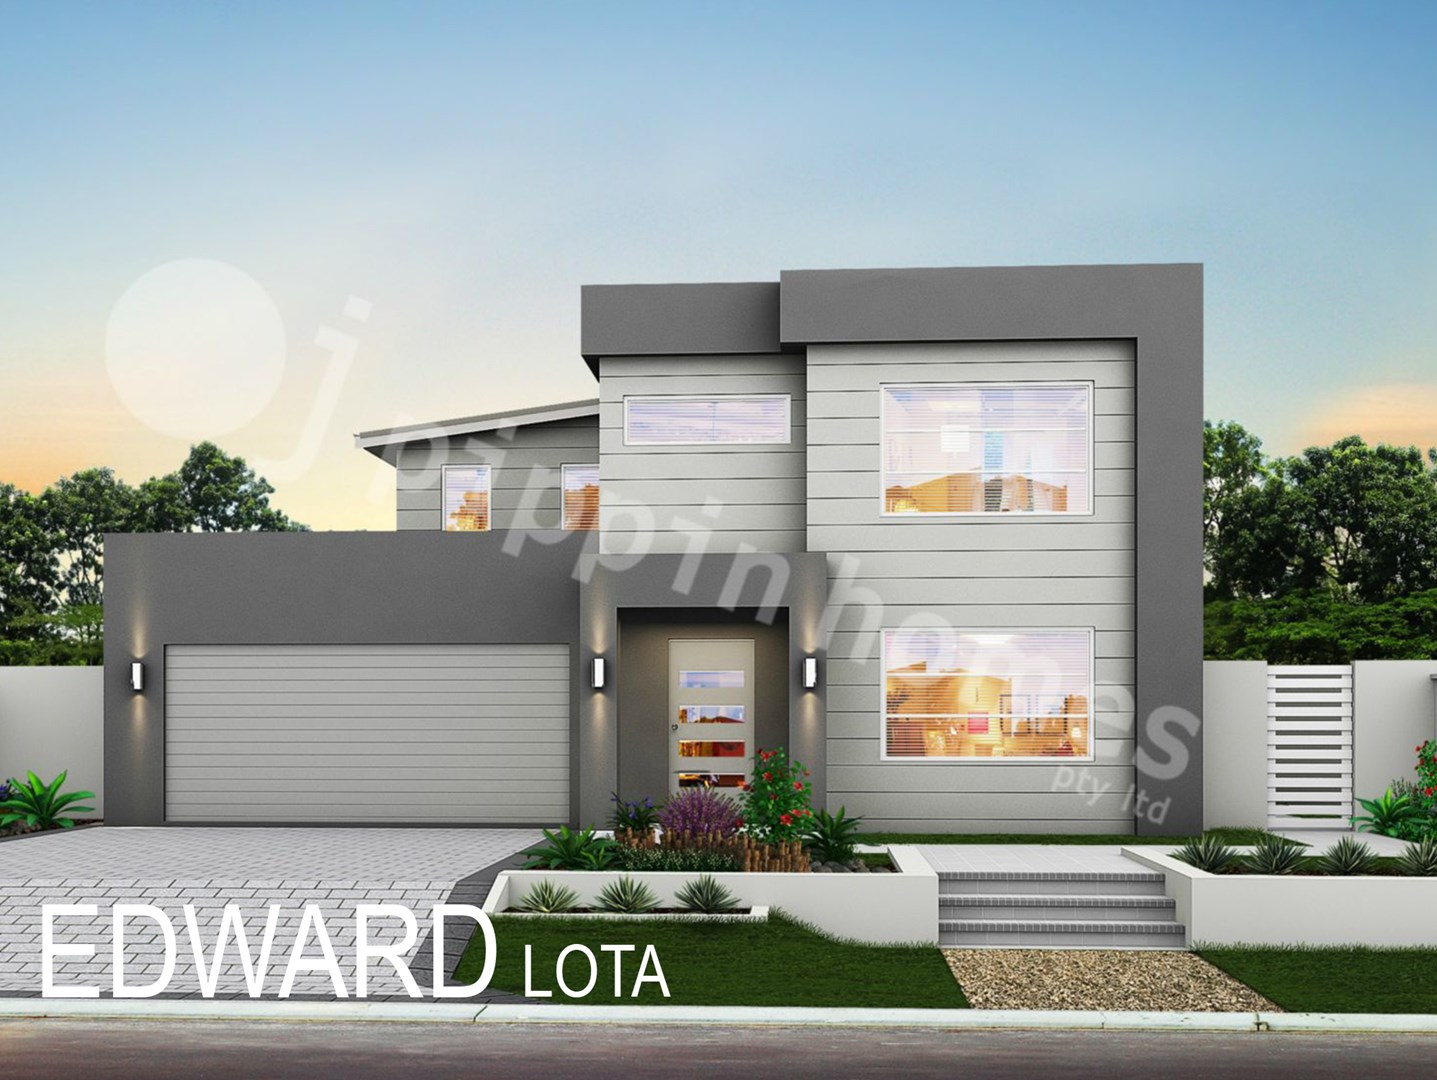 Price From $737,760